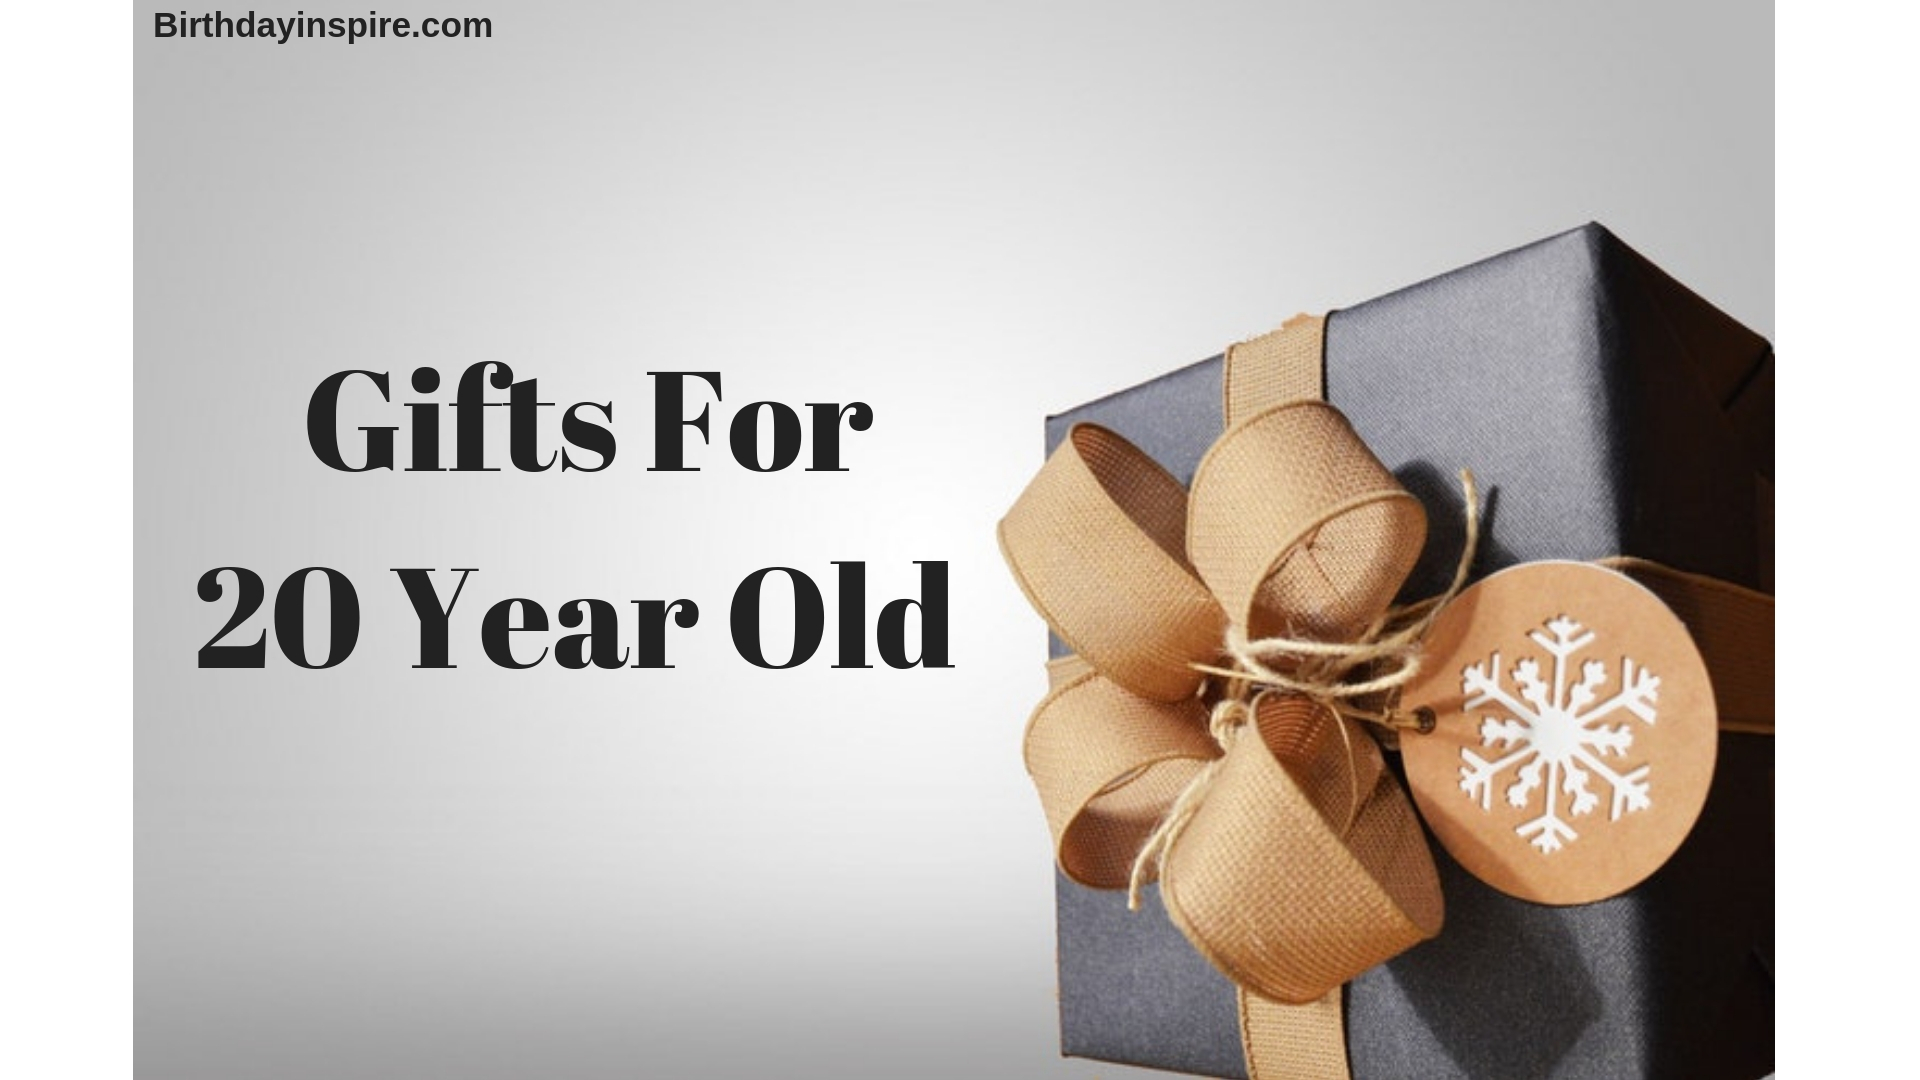 15 Astounding Gifts For 20 Year OldBirthday Inspire